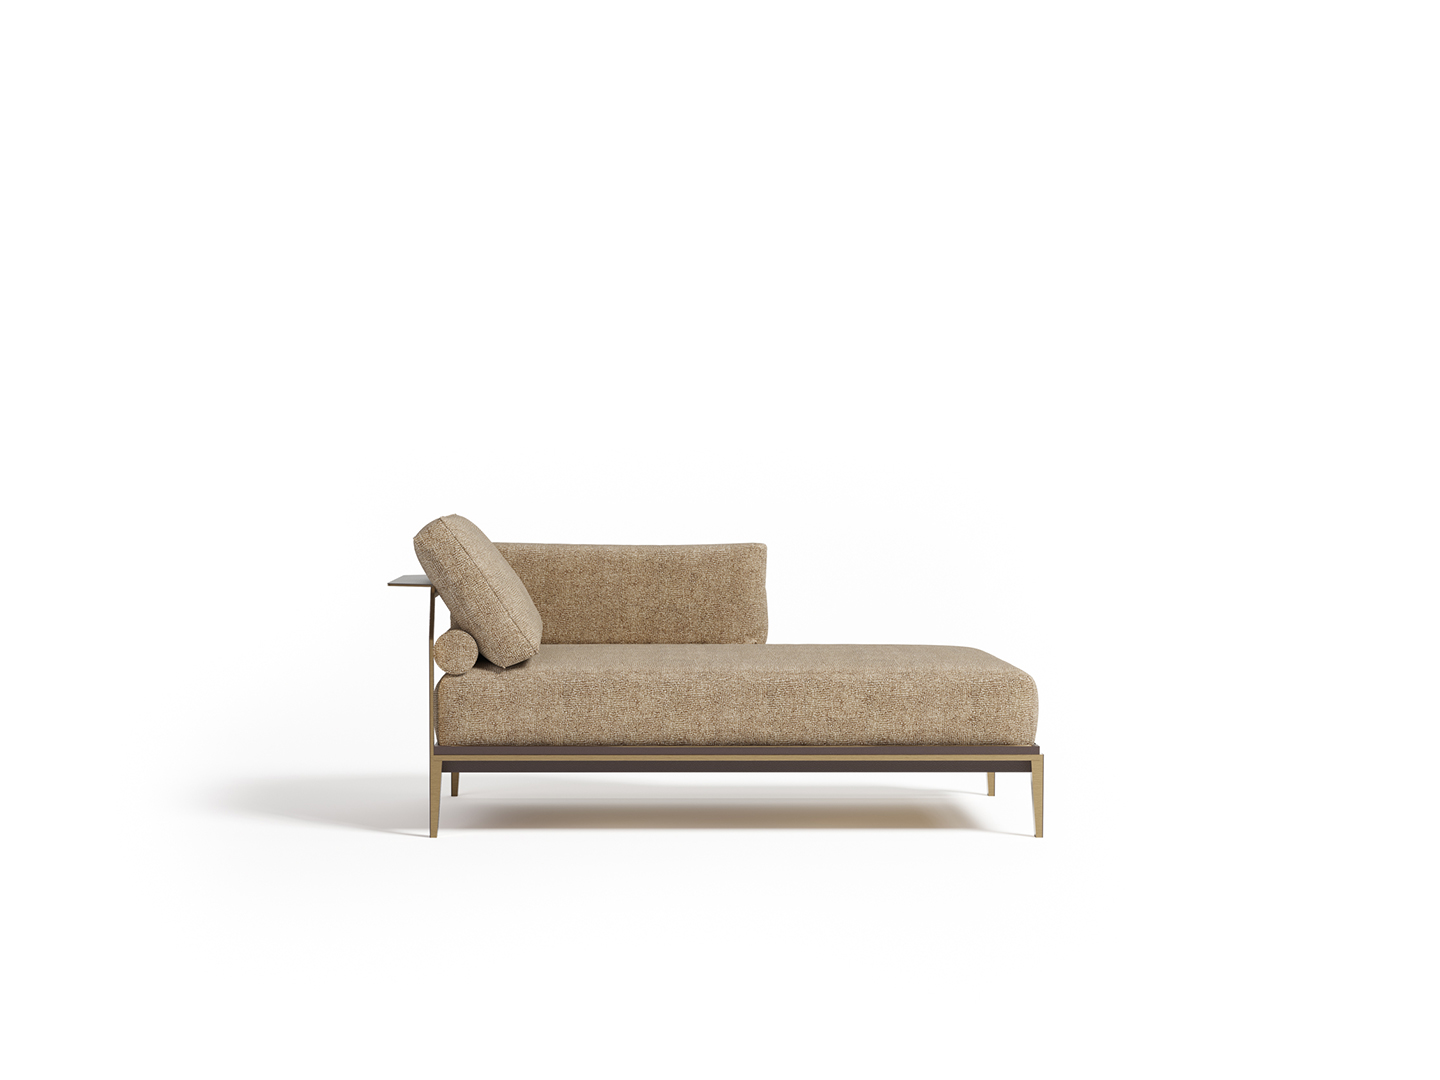 Victor chaise longue